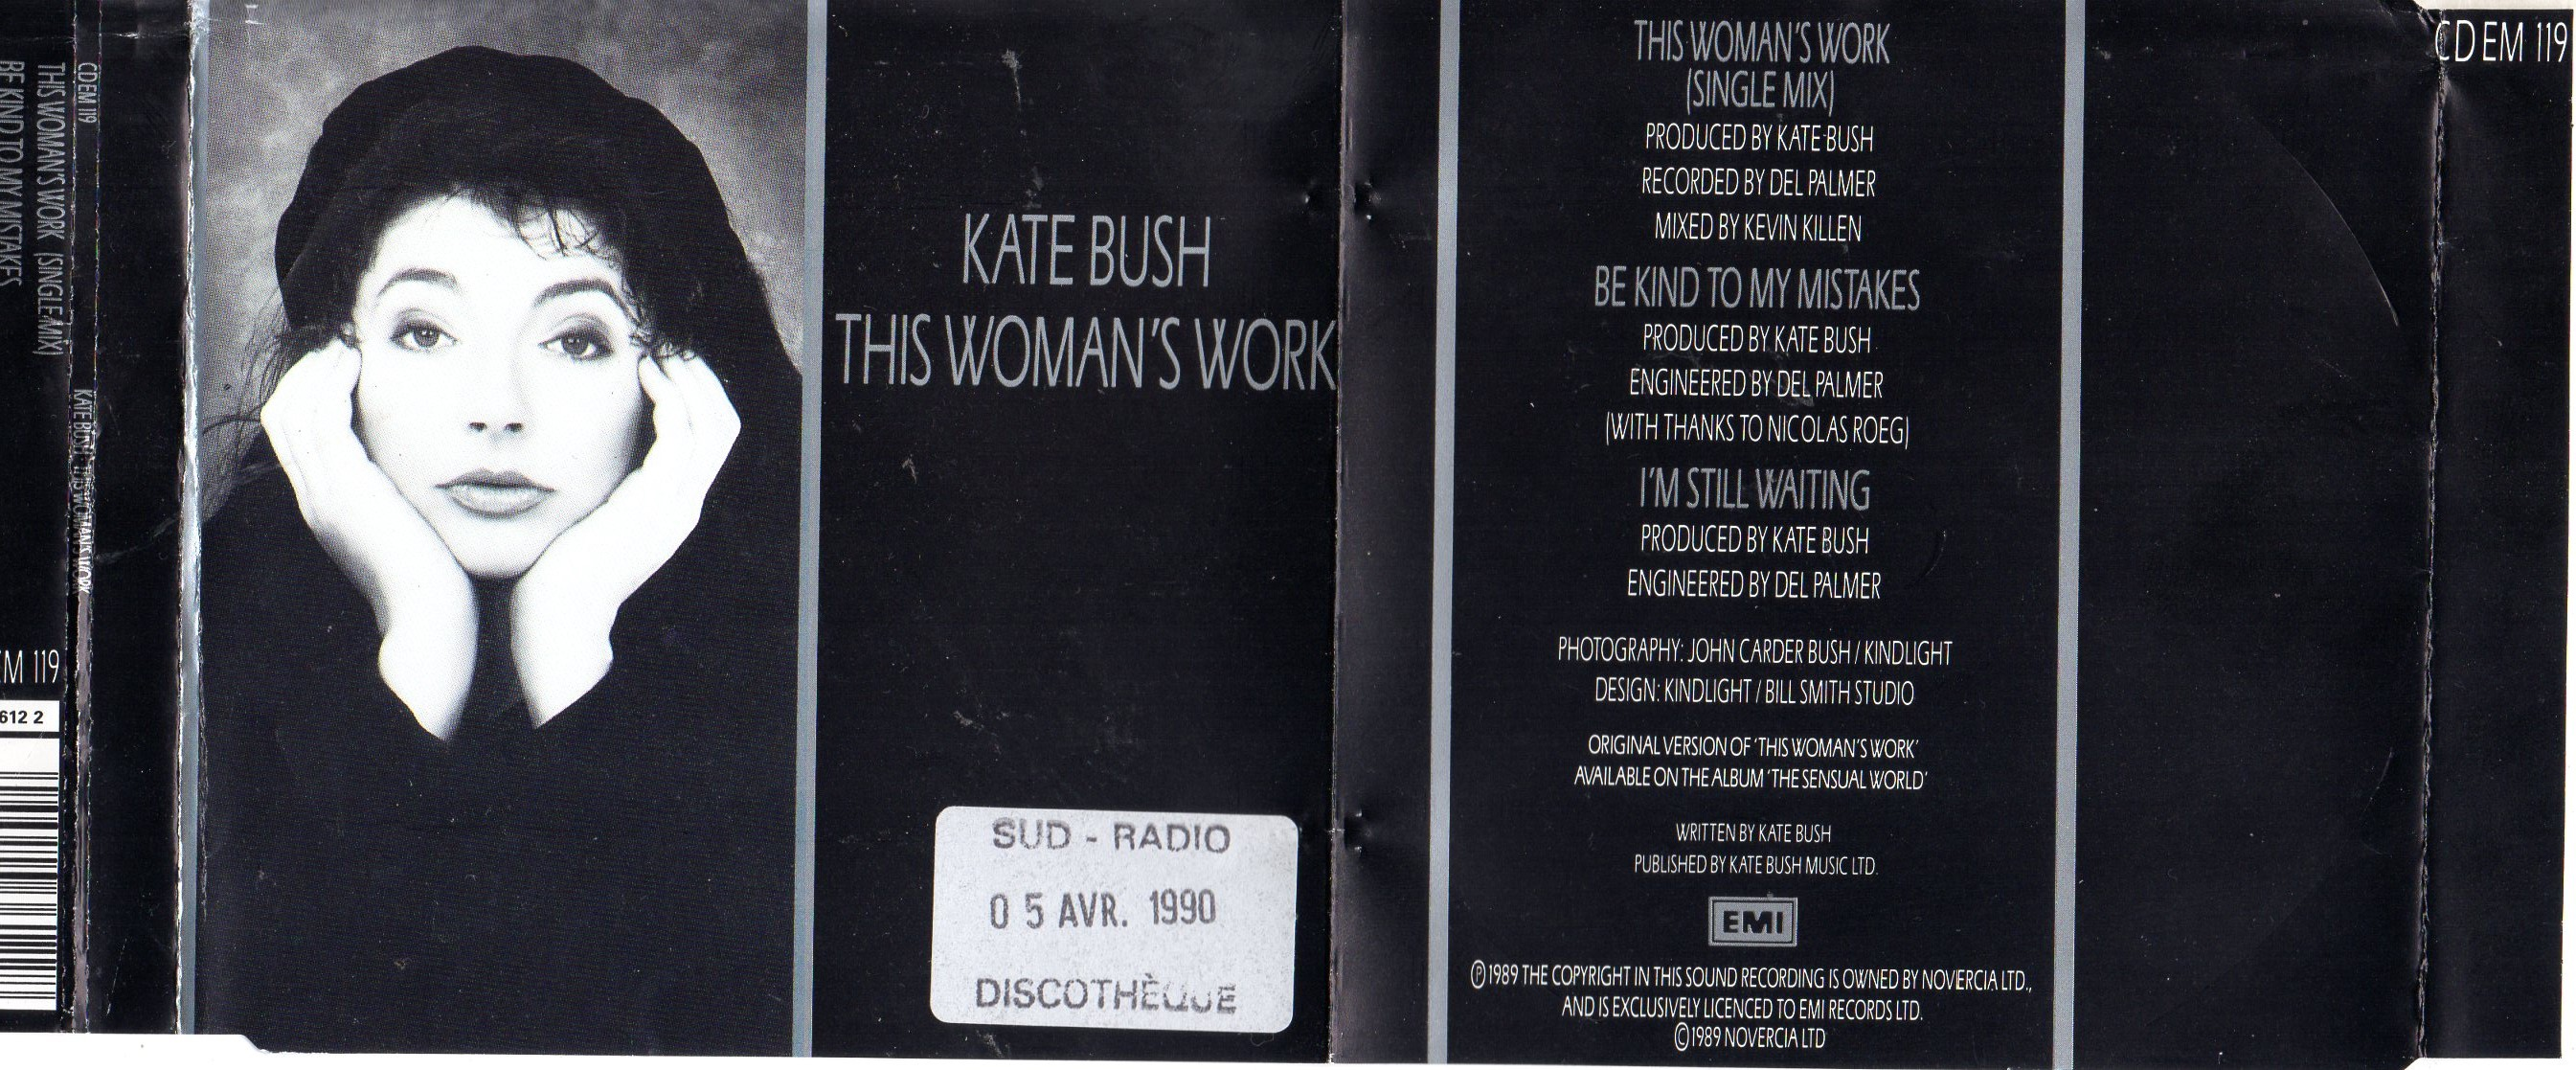 Kate BUSH - This Woman's Work Album